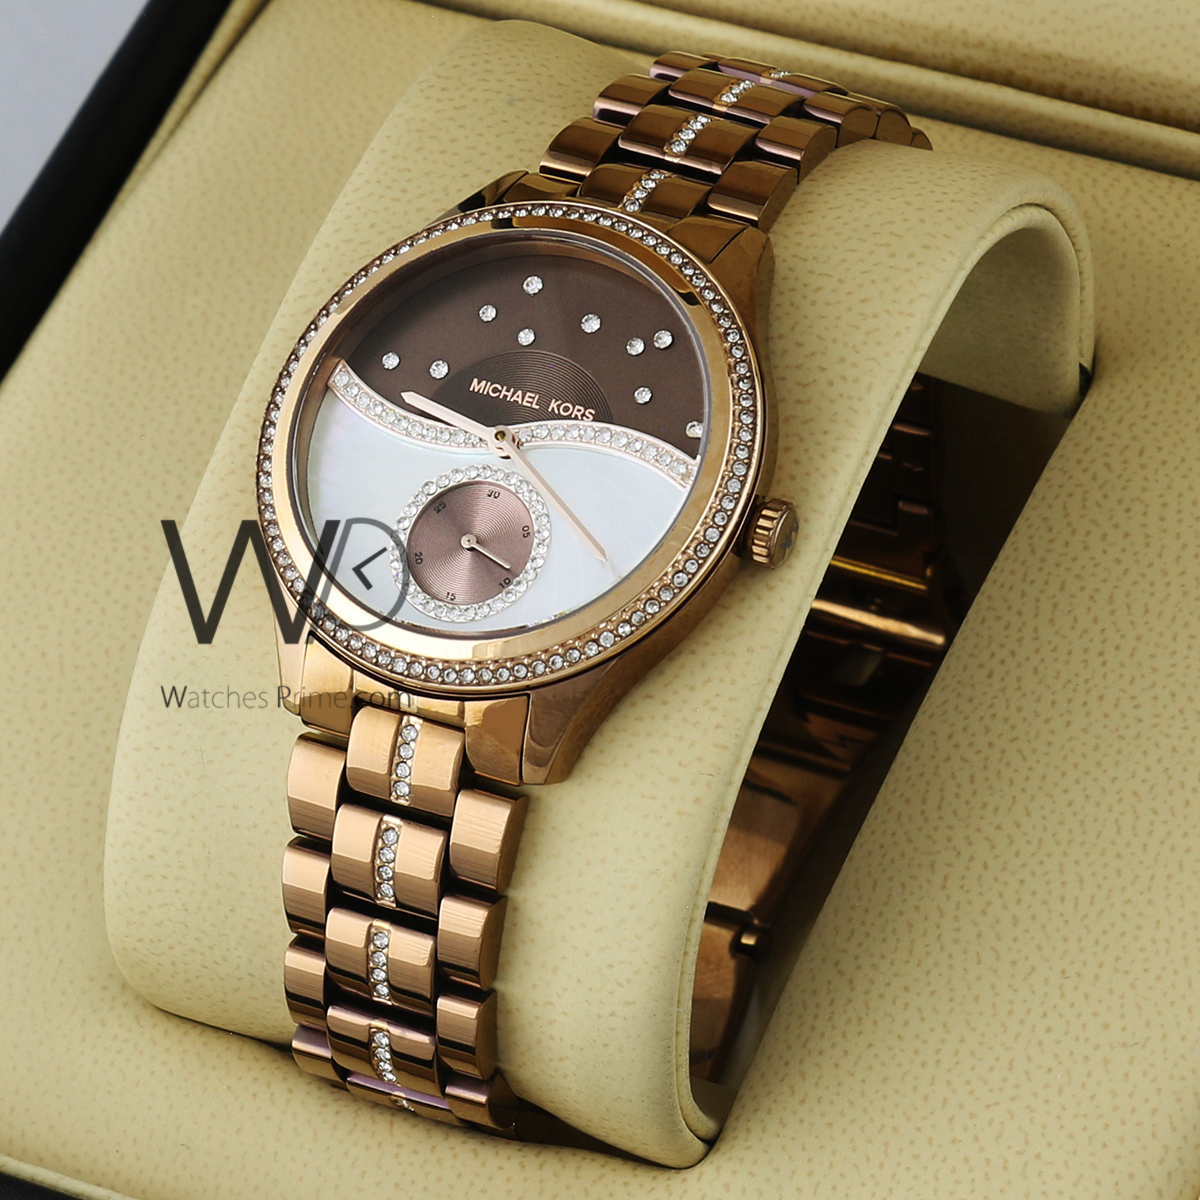 4ccf37d867b2d MICHAEL KORS WATCH BROWN WITH STAINLESS STEEL ROSE GOLD BELT. SKU: W1727.  Roll over image to zoom in